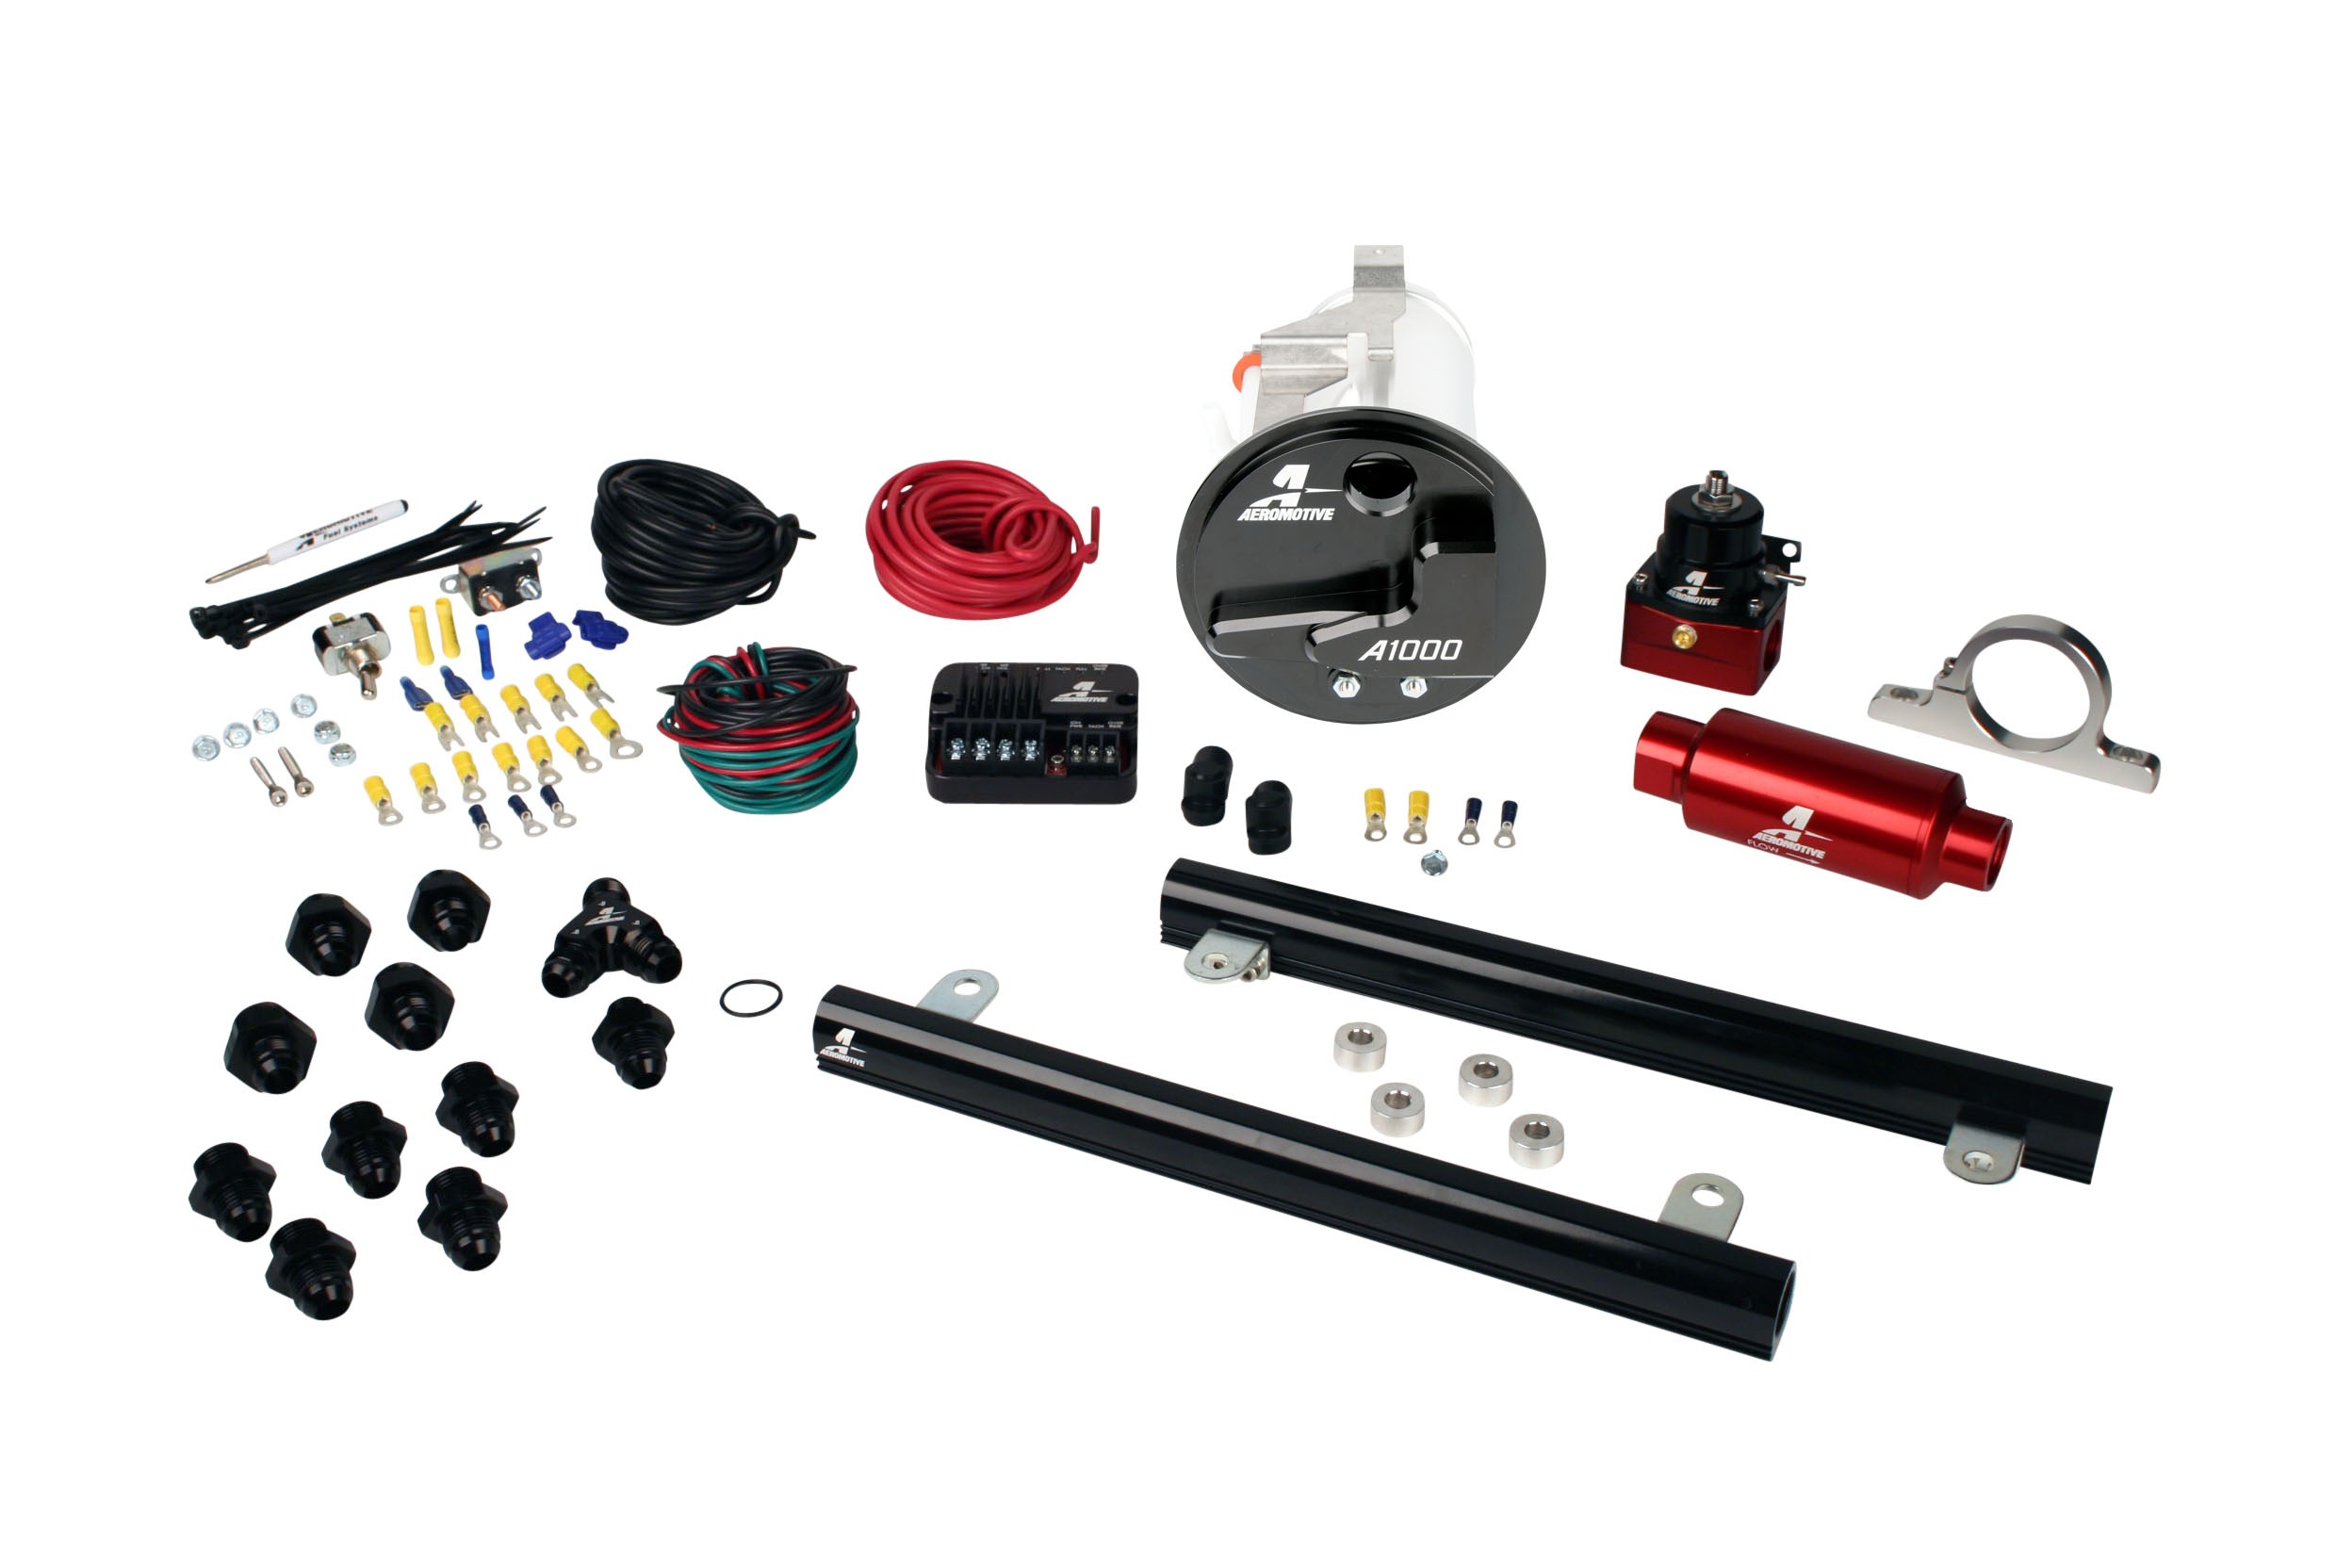 2005-2009 Ford Mustang GT Aeromotive Stealth A1000 Street Fuel System w/5.4L 4-V Fuel Rails Coyote Swap